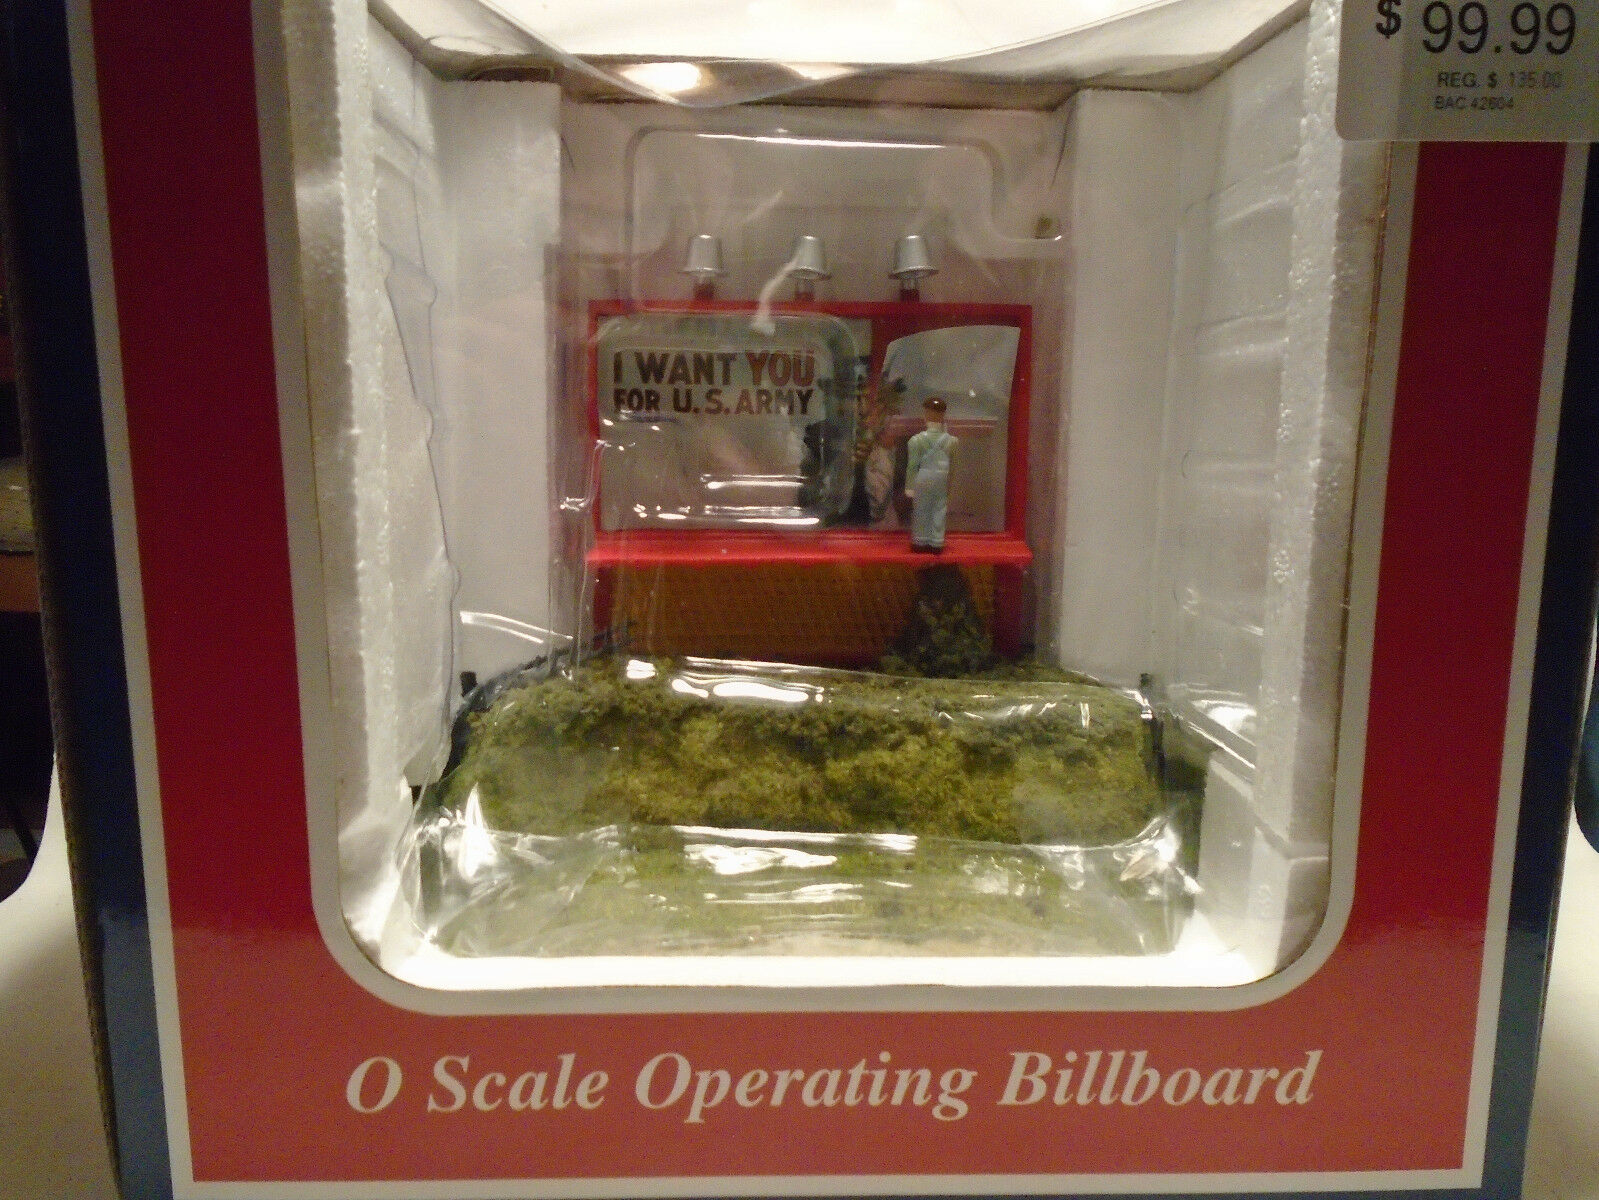 WILLIAMS  42604 O SCALE US ARMY WANTS YOU OPERATING BILLBOARD NEW IN BOX